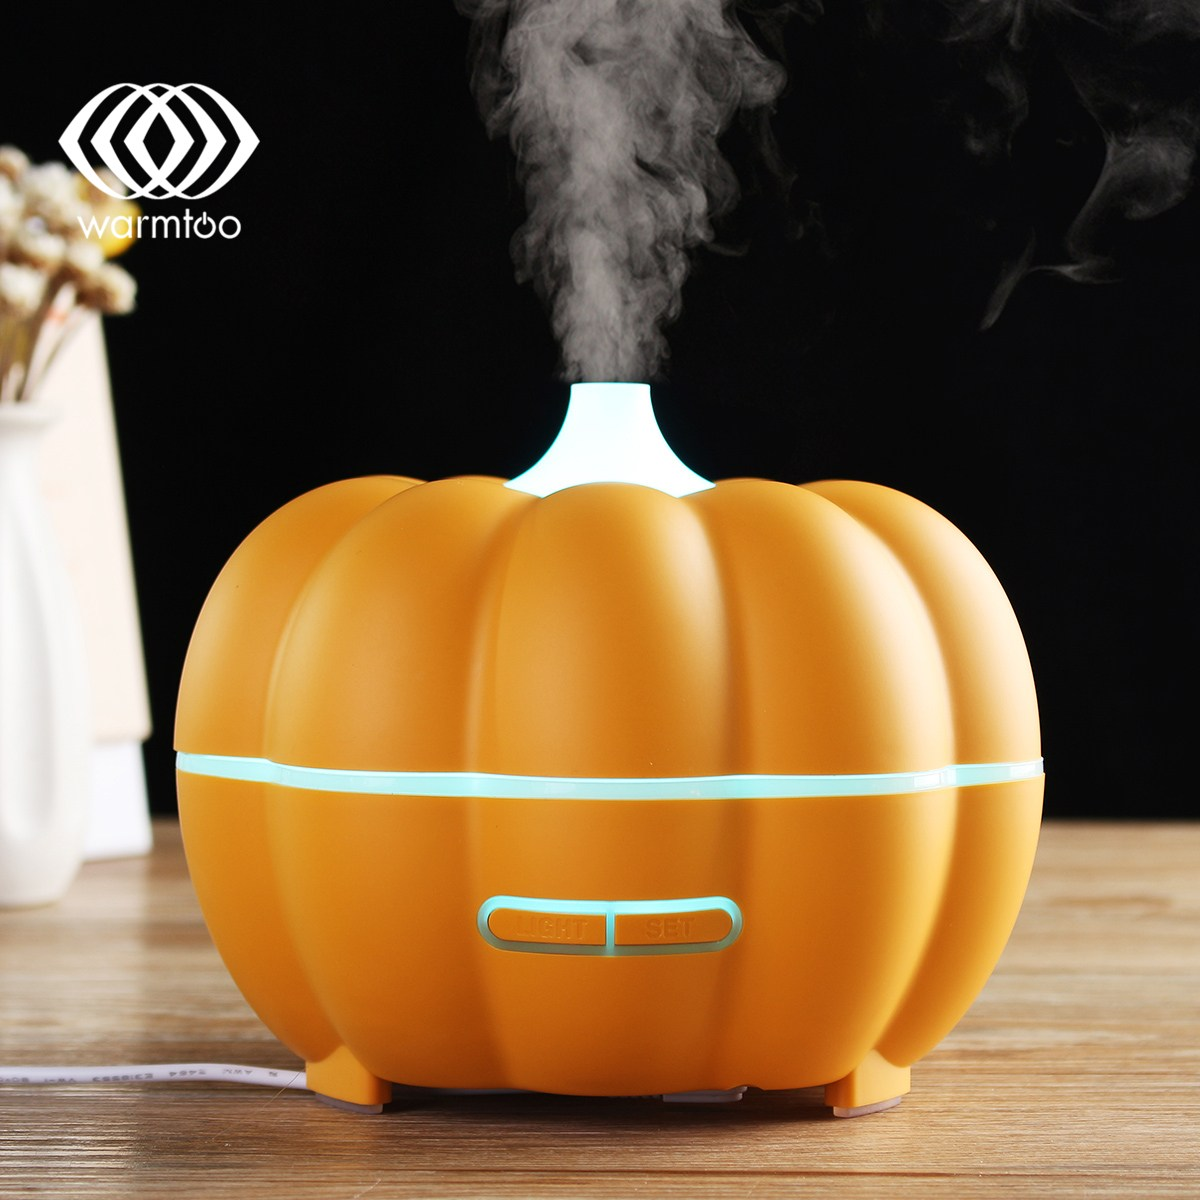 Warmtoo Convenient WiFi Smart Essential Oil Aroma Diffuser Humidifier For Alexa Google Home APP Timing Control все цены